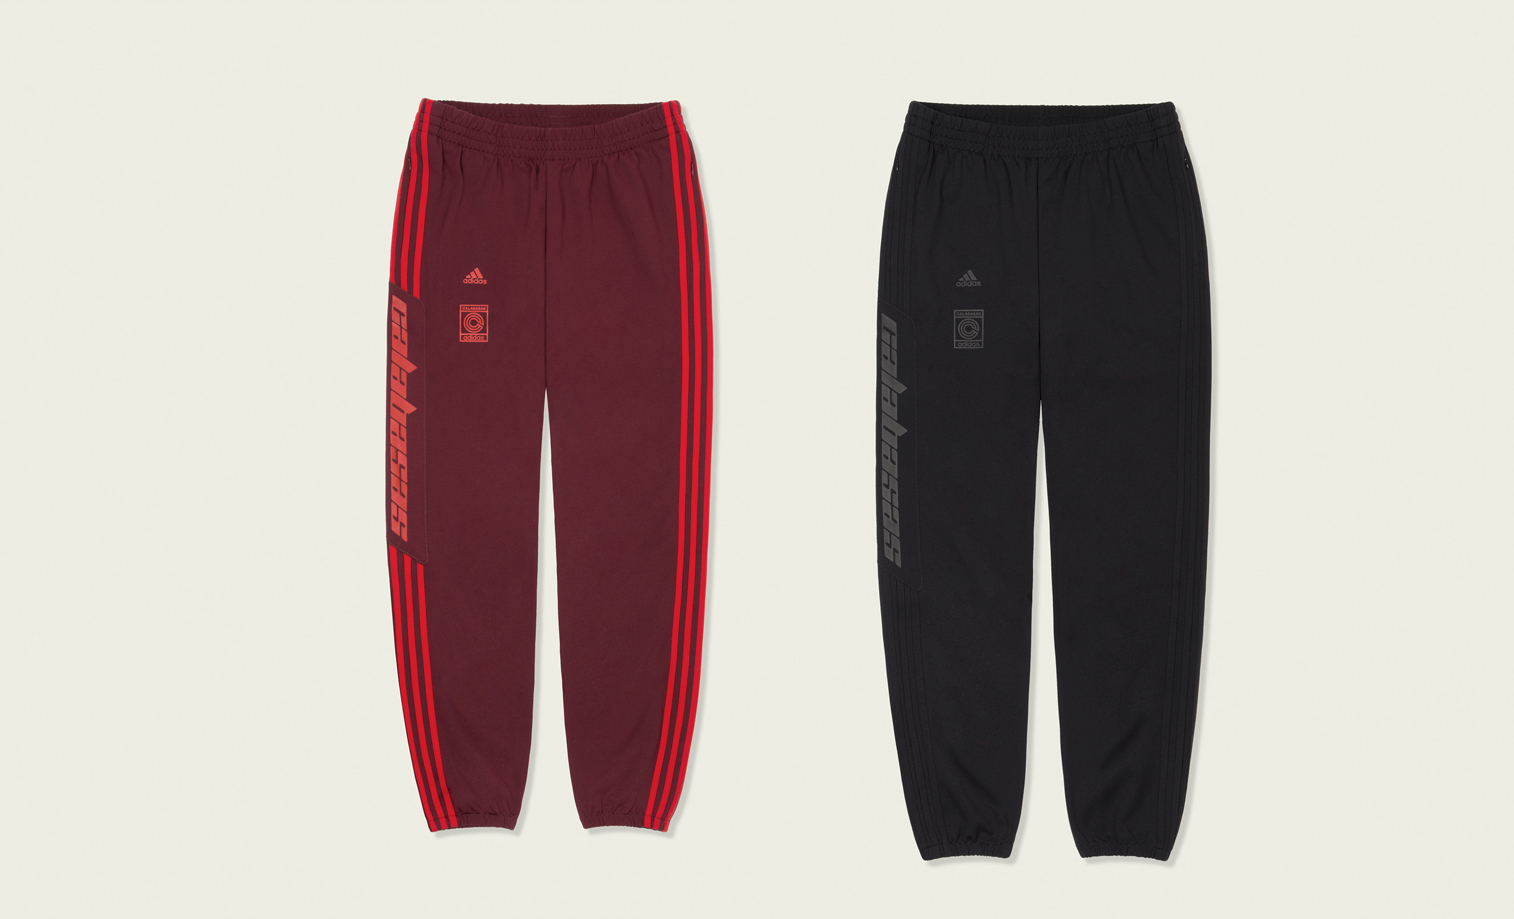 """c55a5ece Kanye West's Calabasas track pants will release at Shelflife (Joburg & Cape  Town) on Saturday, 02 December 2017 in two colorways – """"Maroon/Red,"""" and  """"Black ..."""